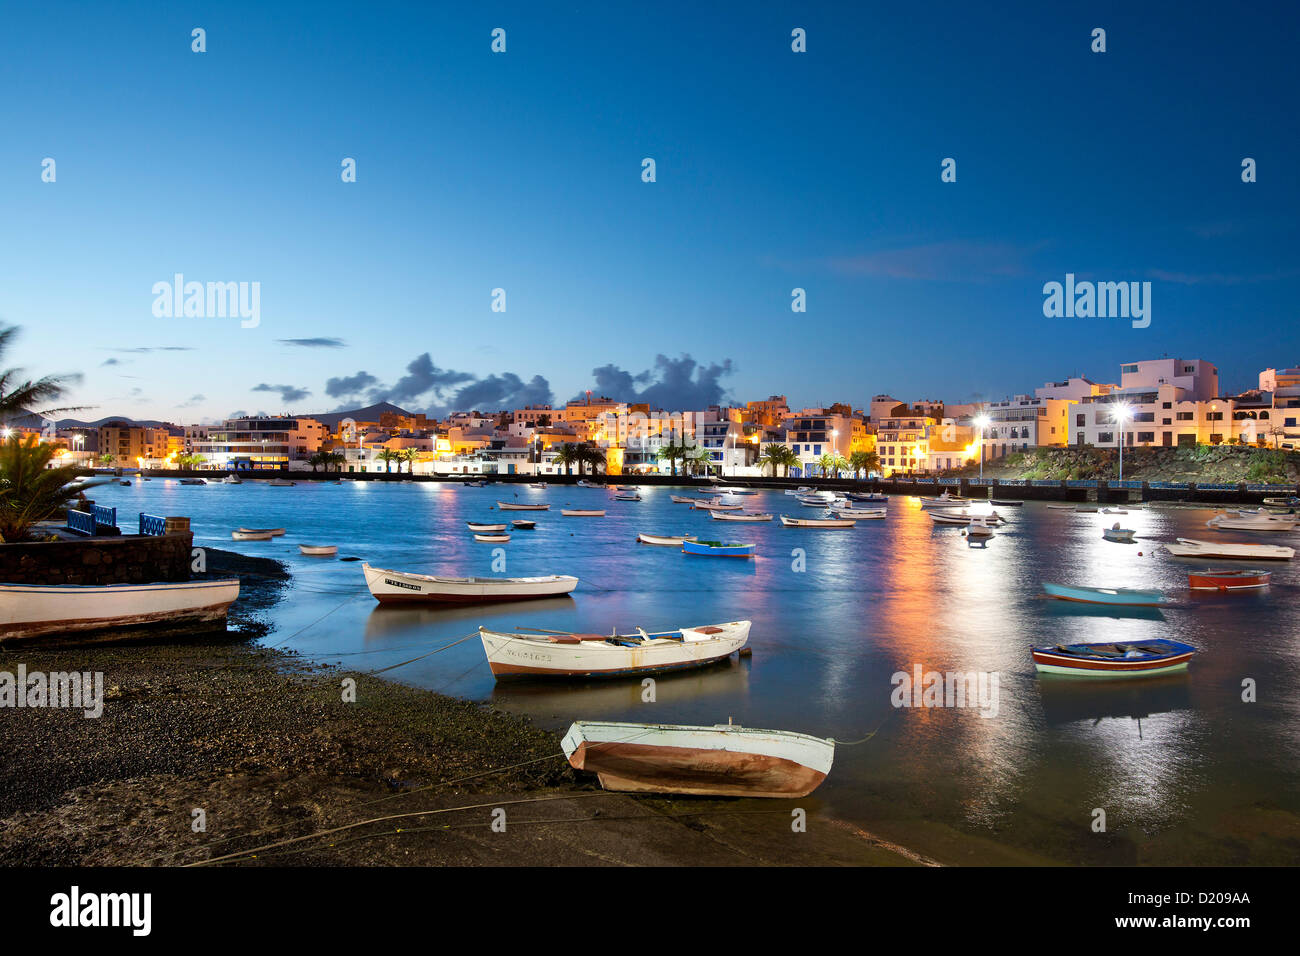 Illuminated houses at Charco de San Gines in the evening, Arrecife, Lanzarote, Canary Islands, Spain, Europe - Stock Image